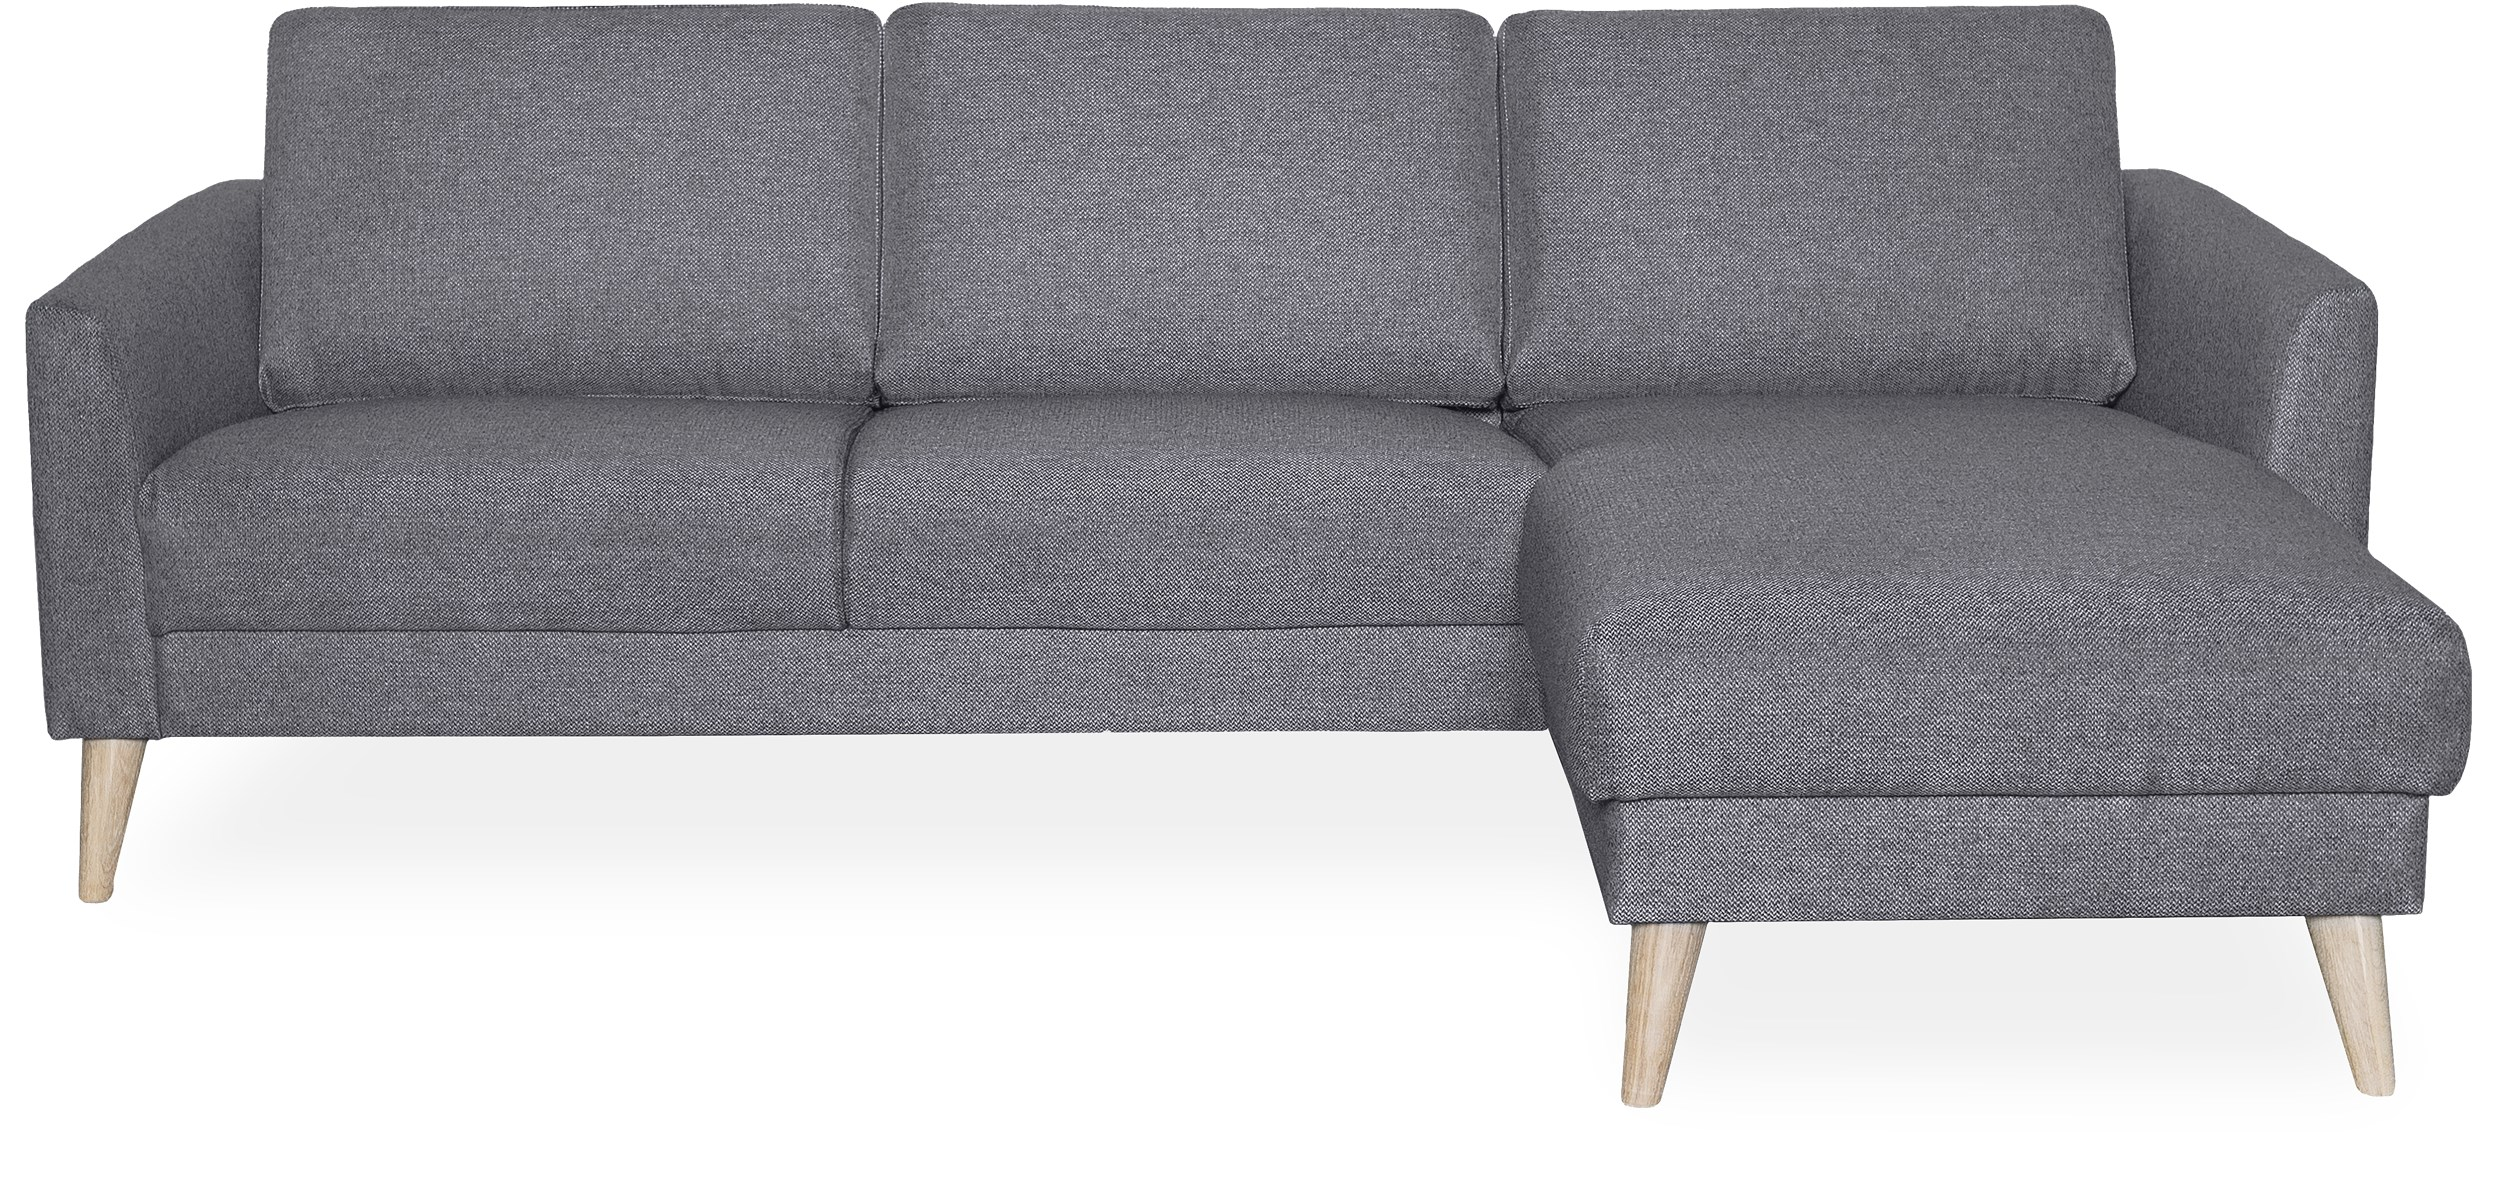 Lotus Sofa med chaiselong - Golf Grey stof og ben i hvidolieret eg